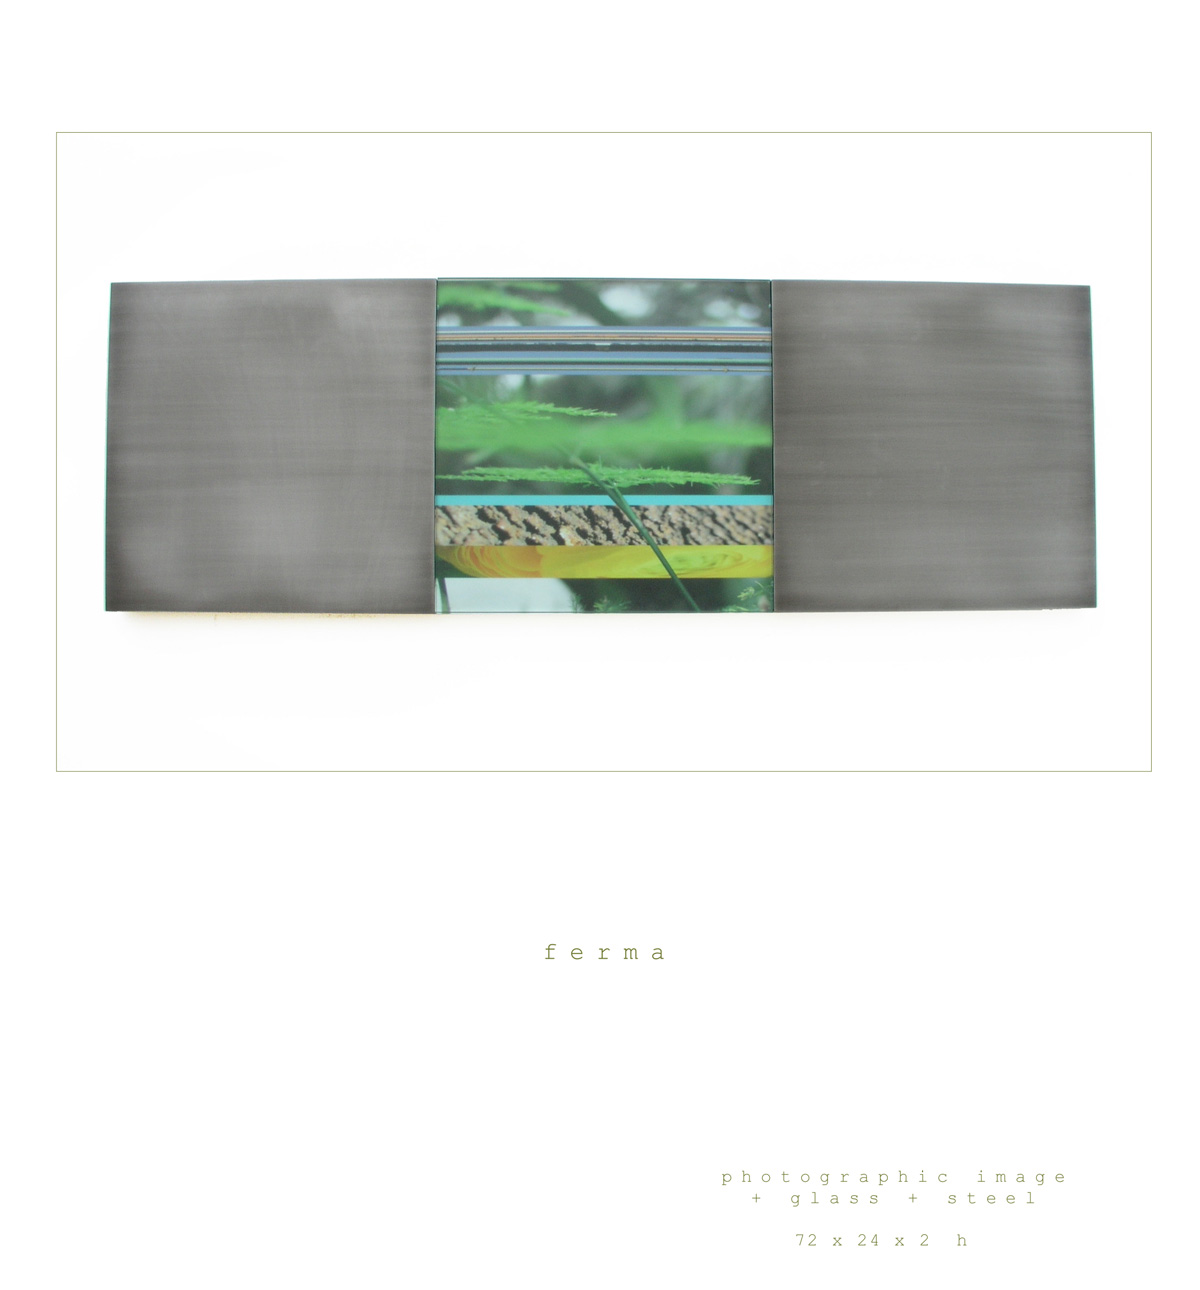 The art piece Ferma is a wall sculpture made out of a photographic image, steel and glass measuring 72 x 24 x 2 inches h made by Chad Manley